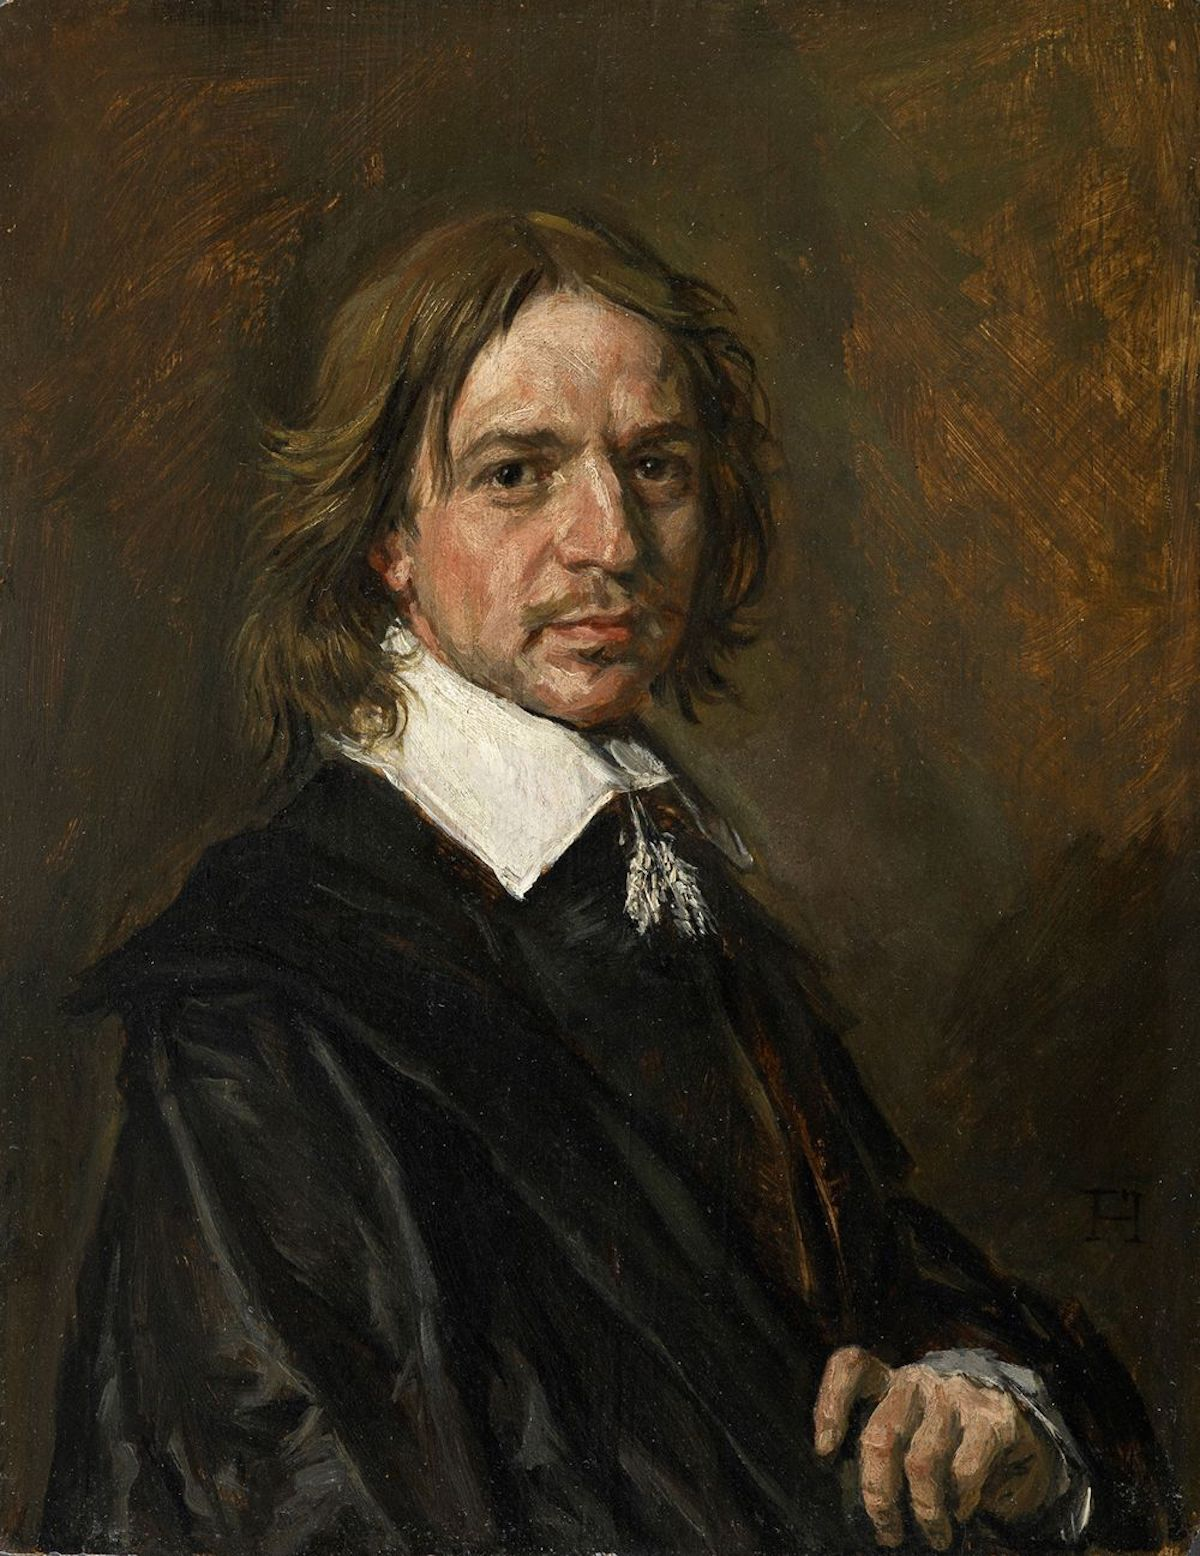 A painting, Portrait of a Man, once attributed to Frans Hals, but which Sotheby's subsequently declared a forgery. Via Wikimedia Commons.